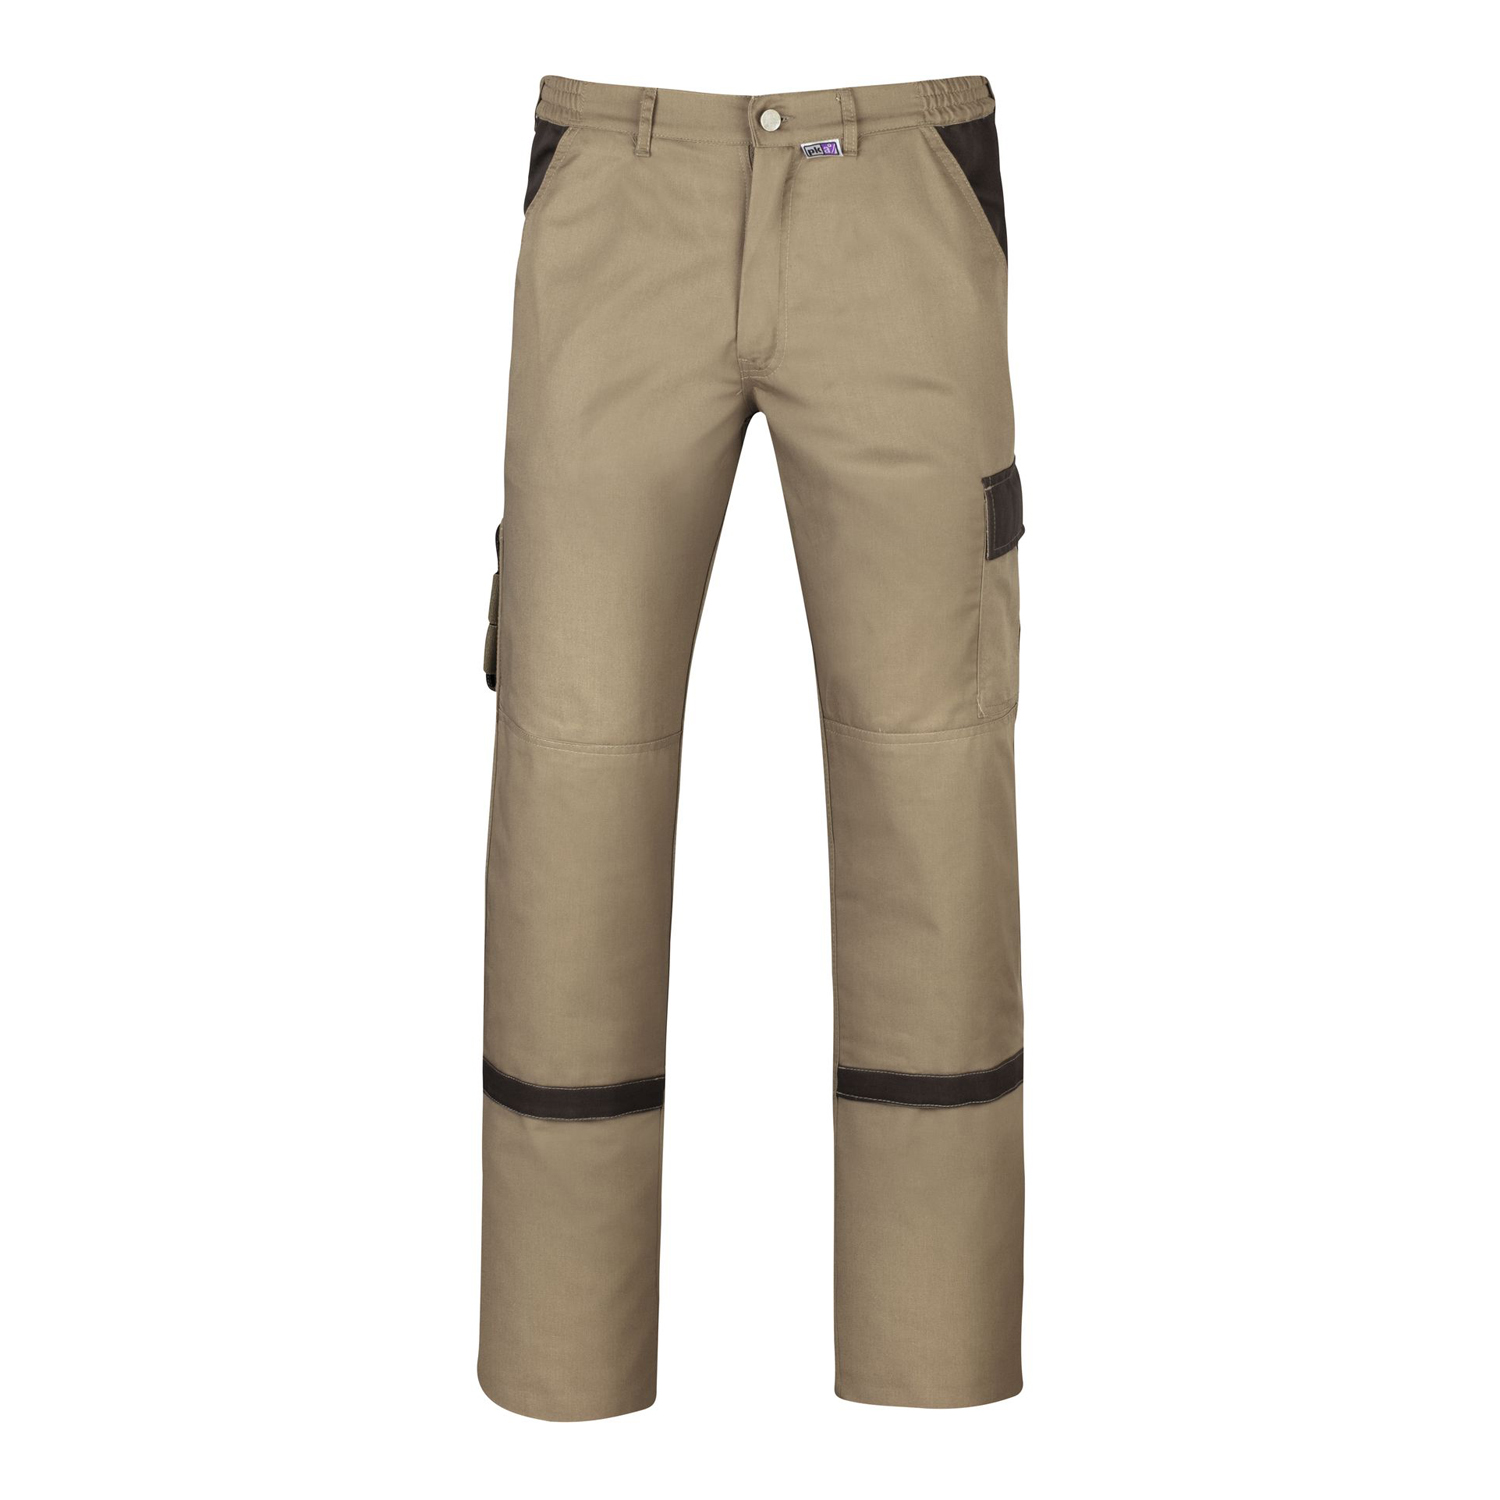 Detail Image to Working trousers model Praktika in sand-brown by PKA Klöcker in large sizes 58-66